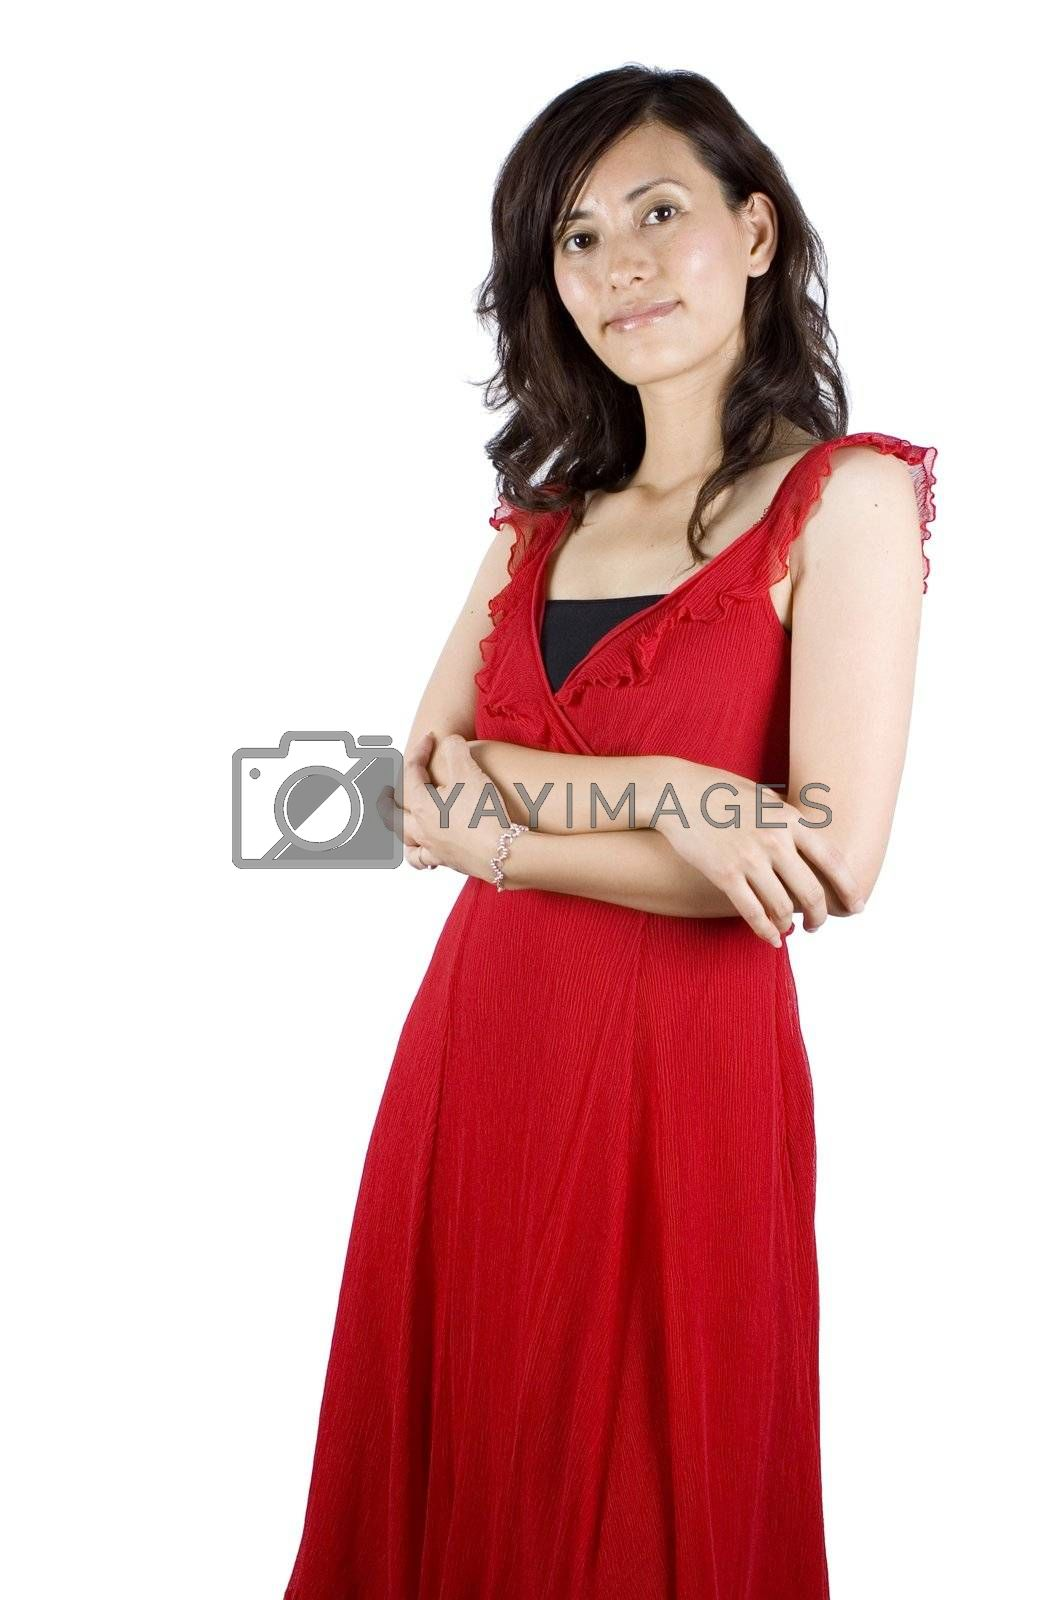 Royalty free image of Chinese girl in red skirt by bartekchiny